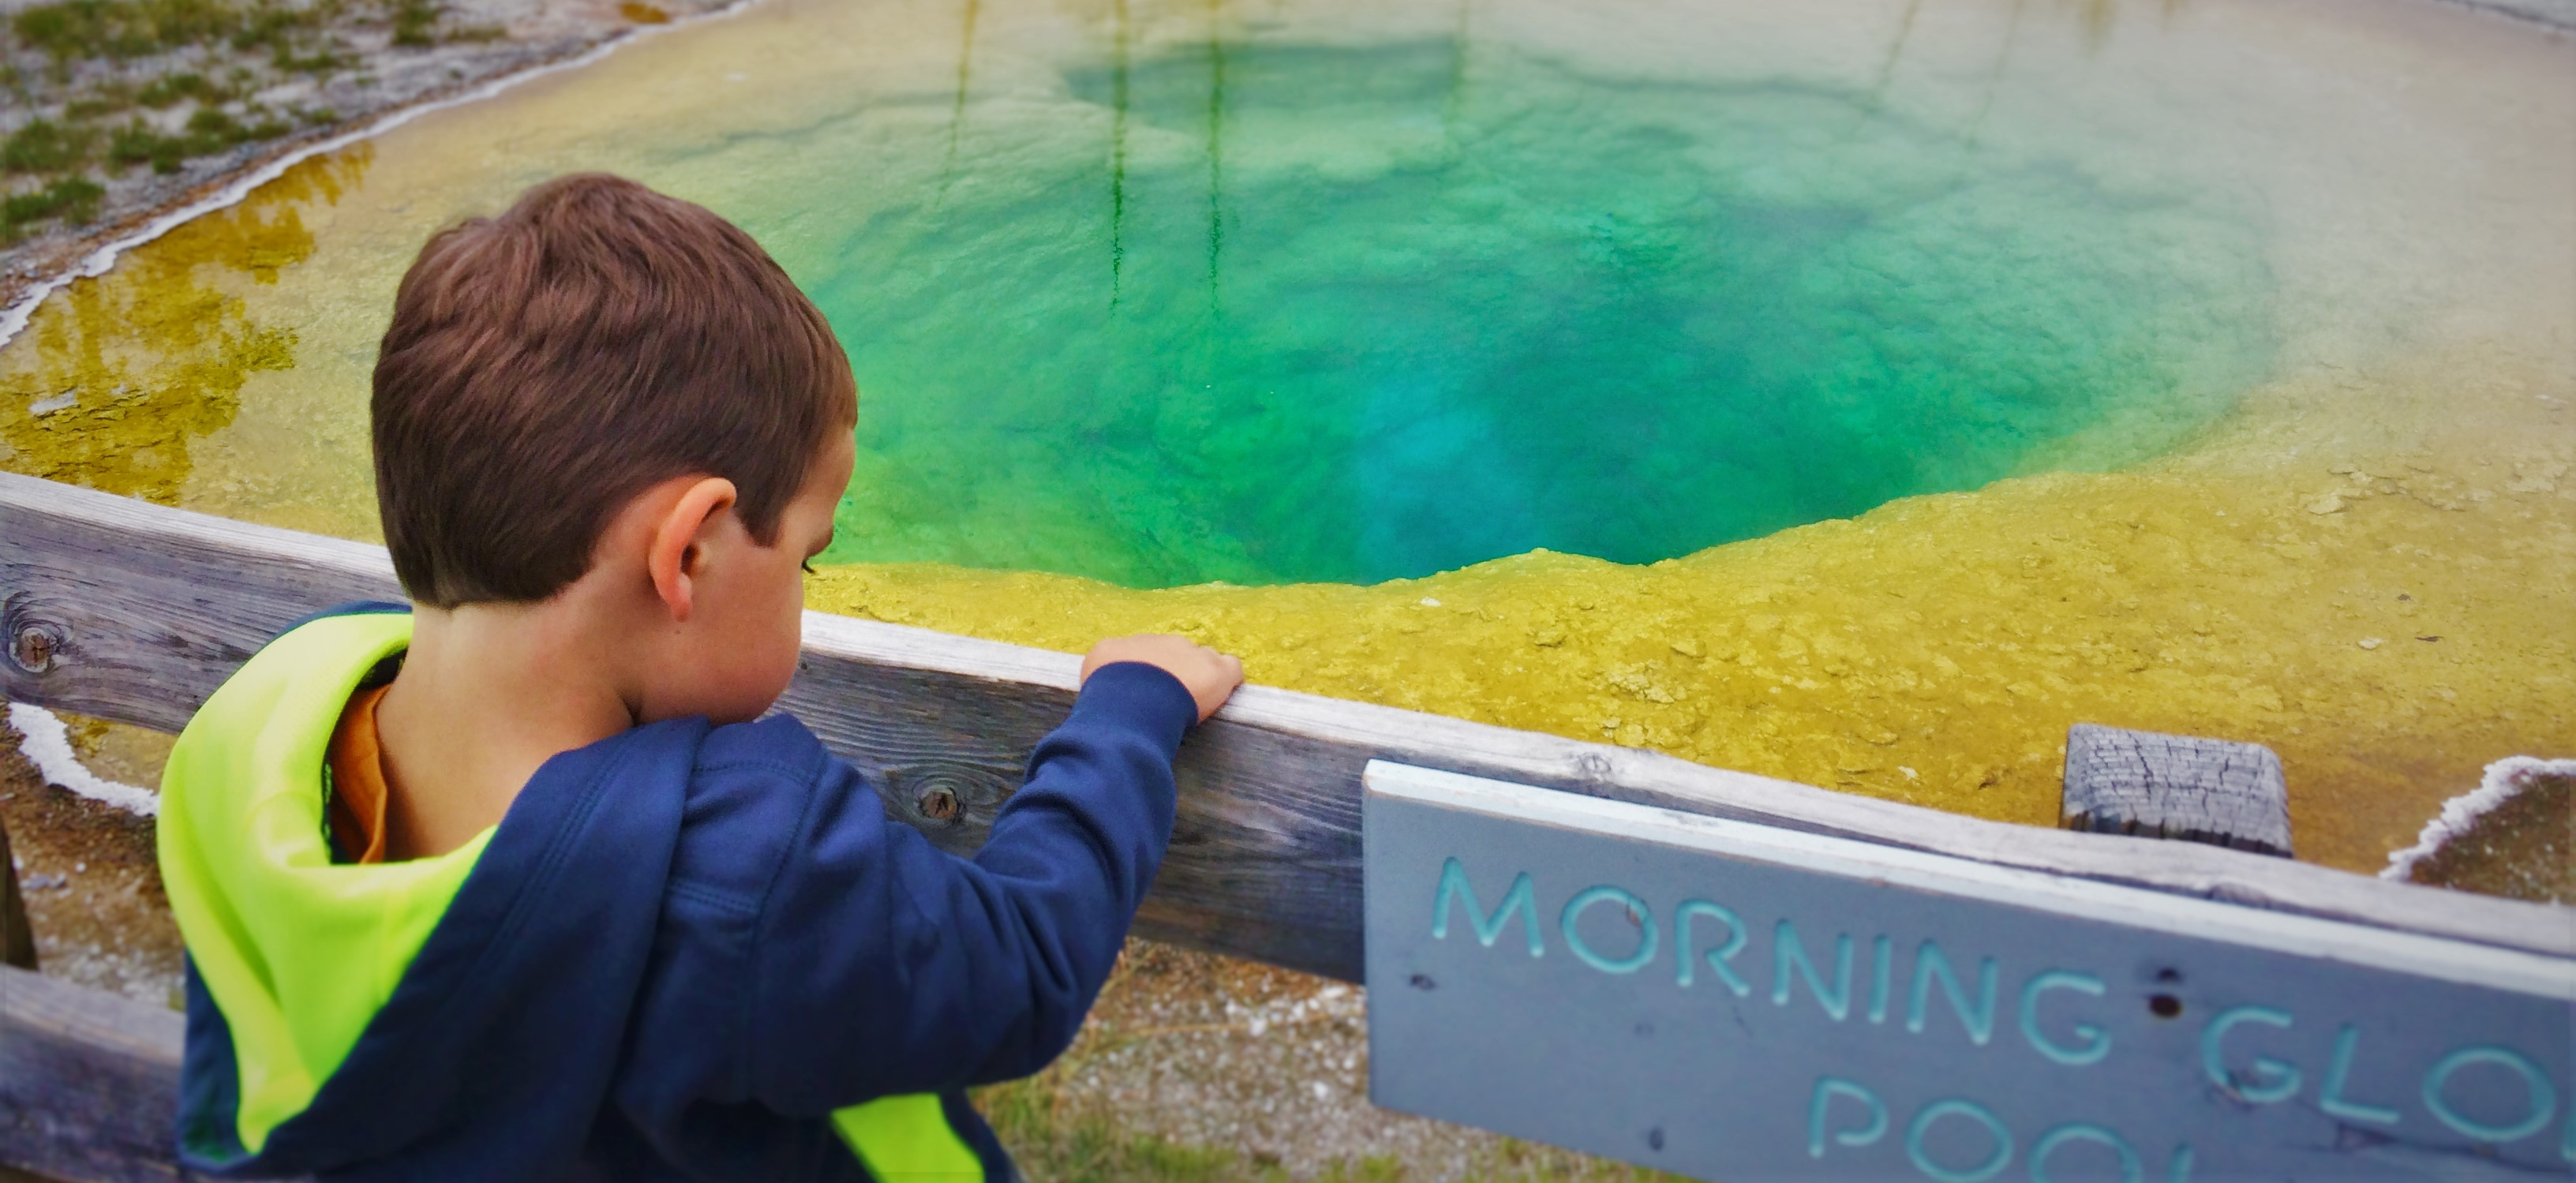 LittleMan with Morning Glory Pool Old Faithful Yellowstone 3 header